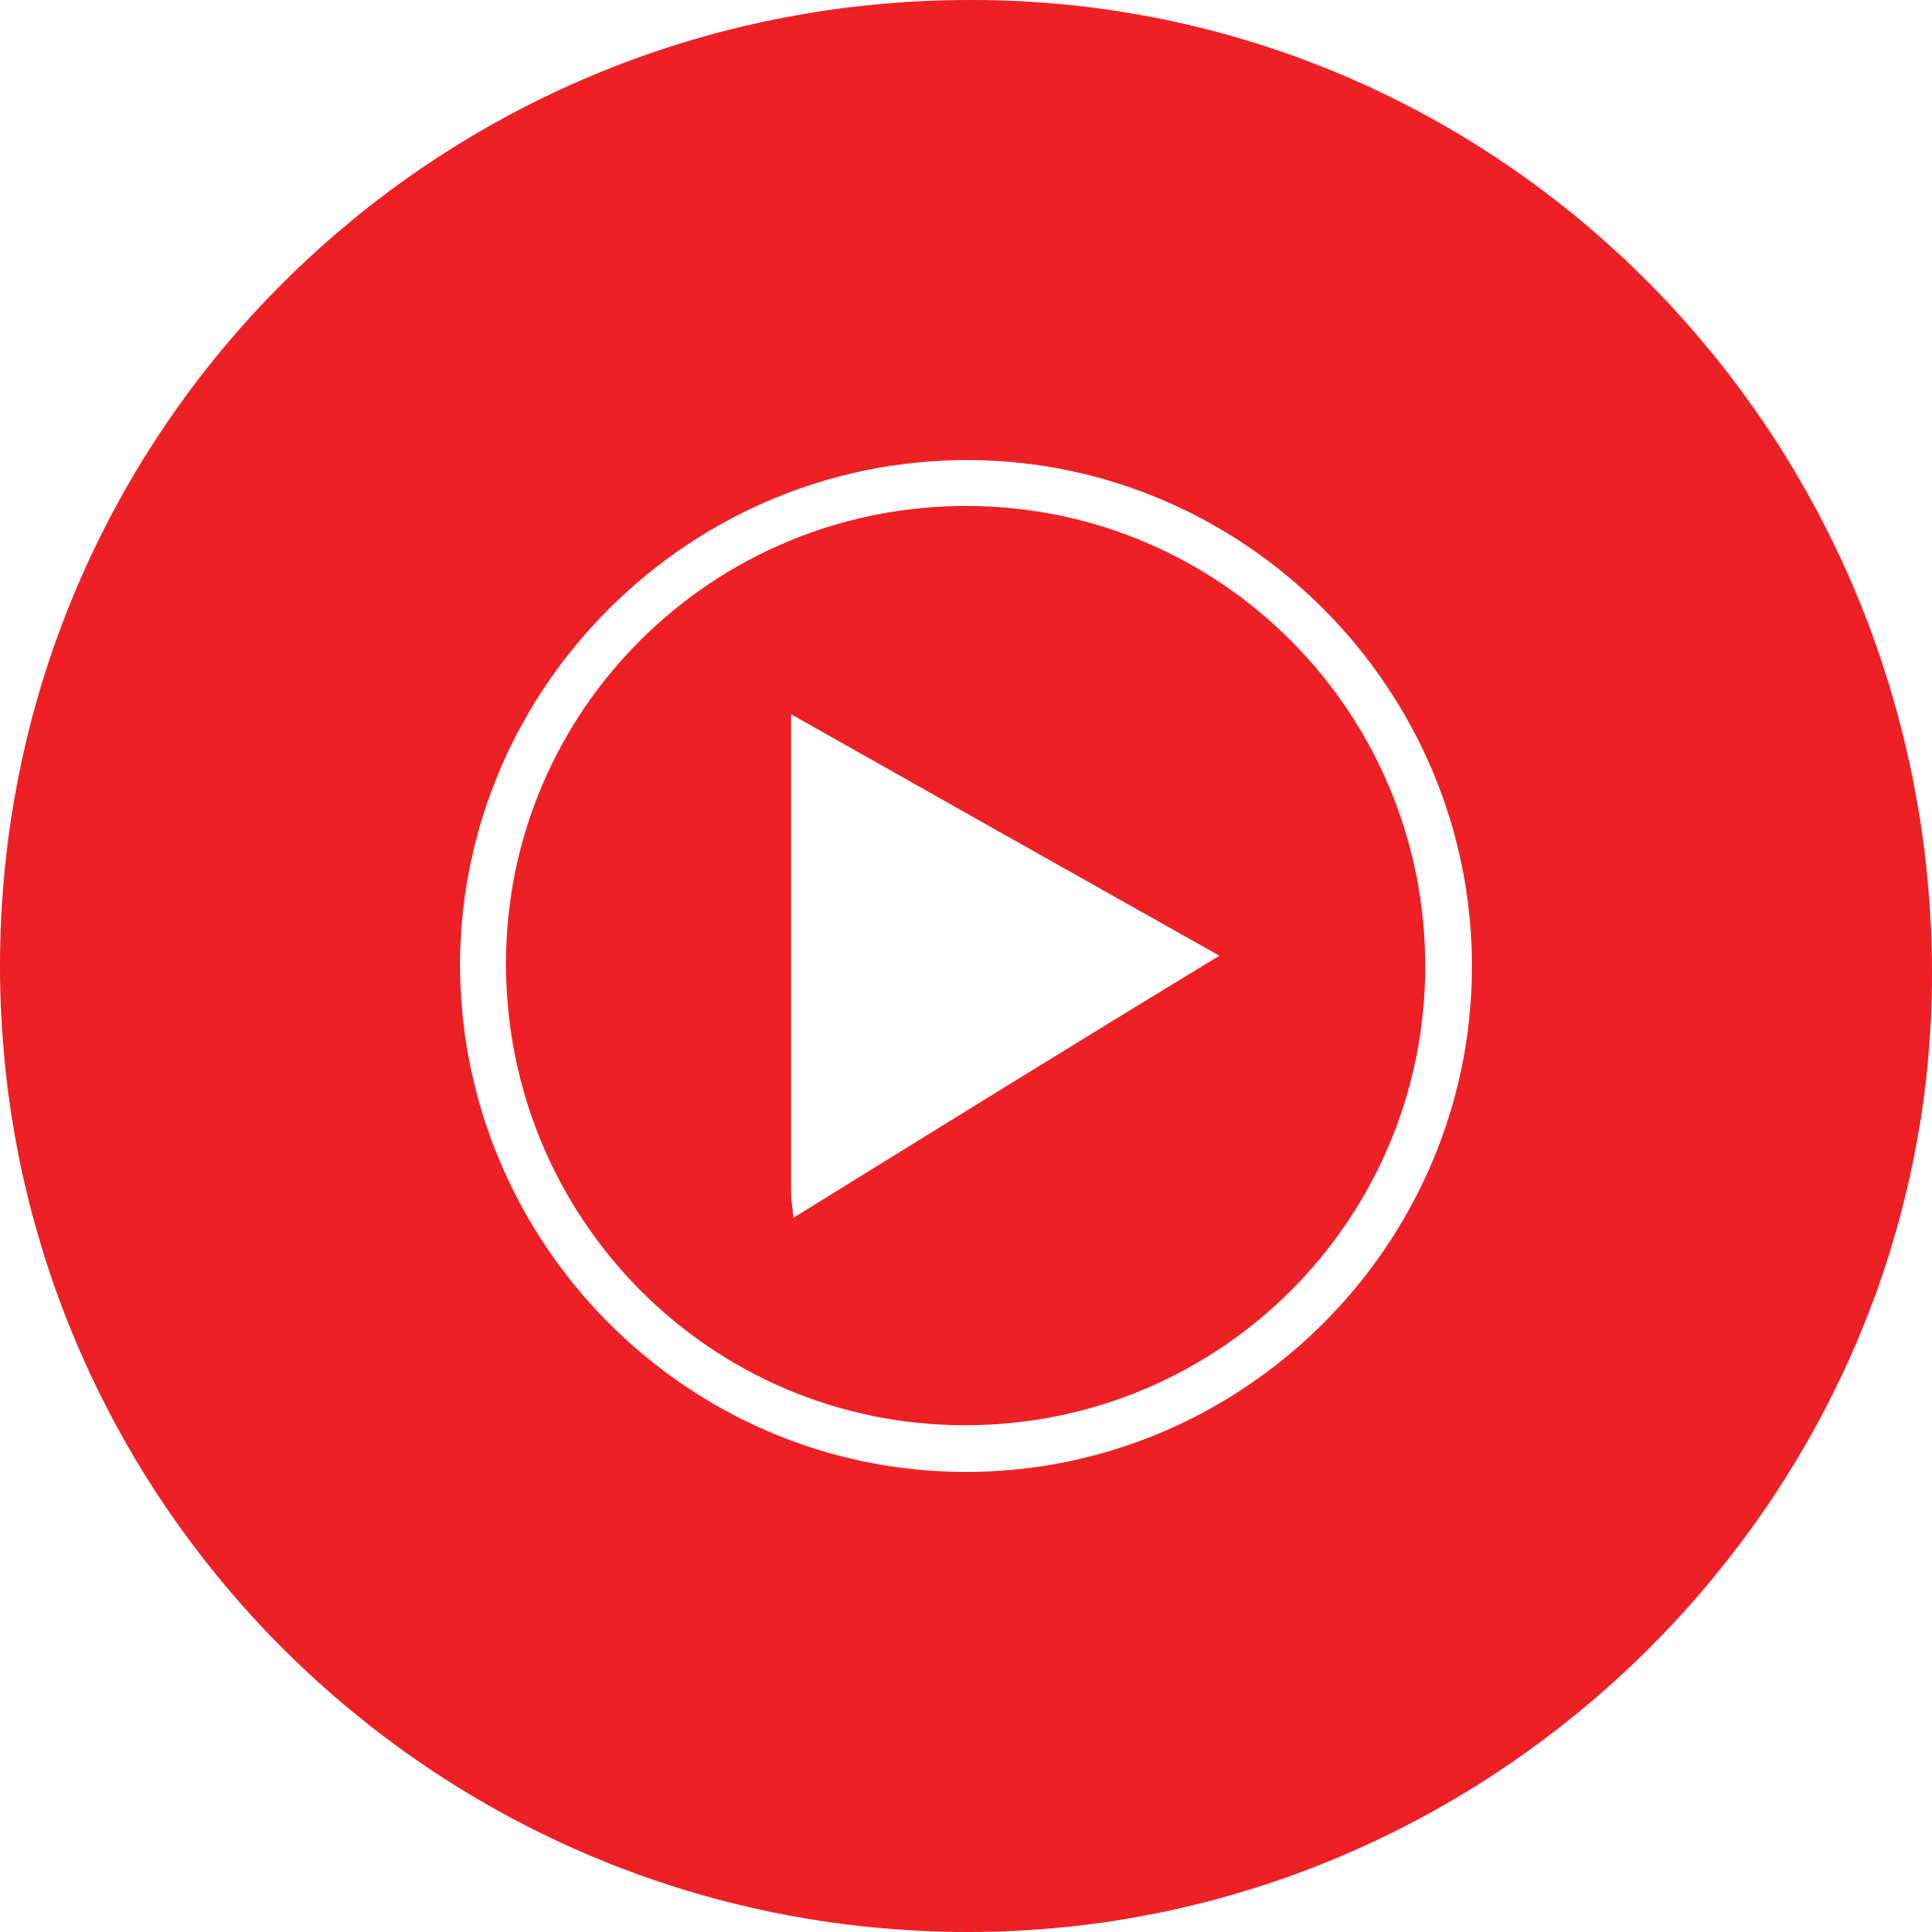 youtube music logo 4 - Youtube Music Logo